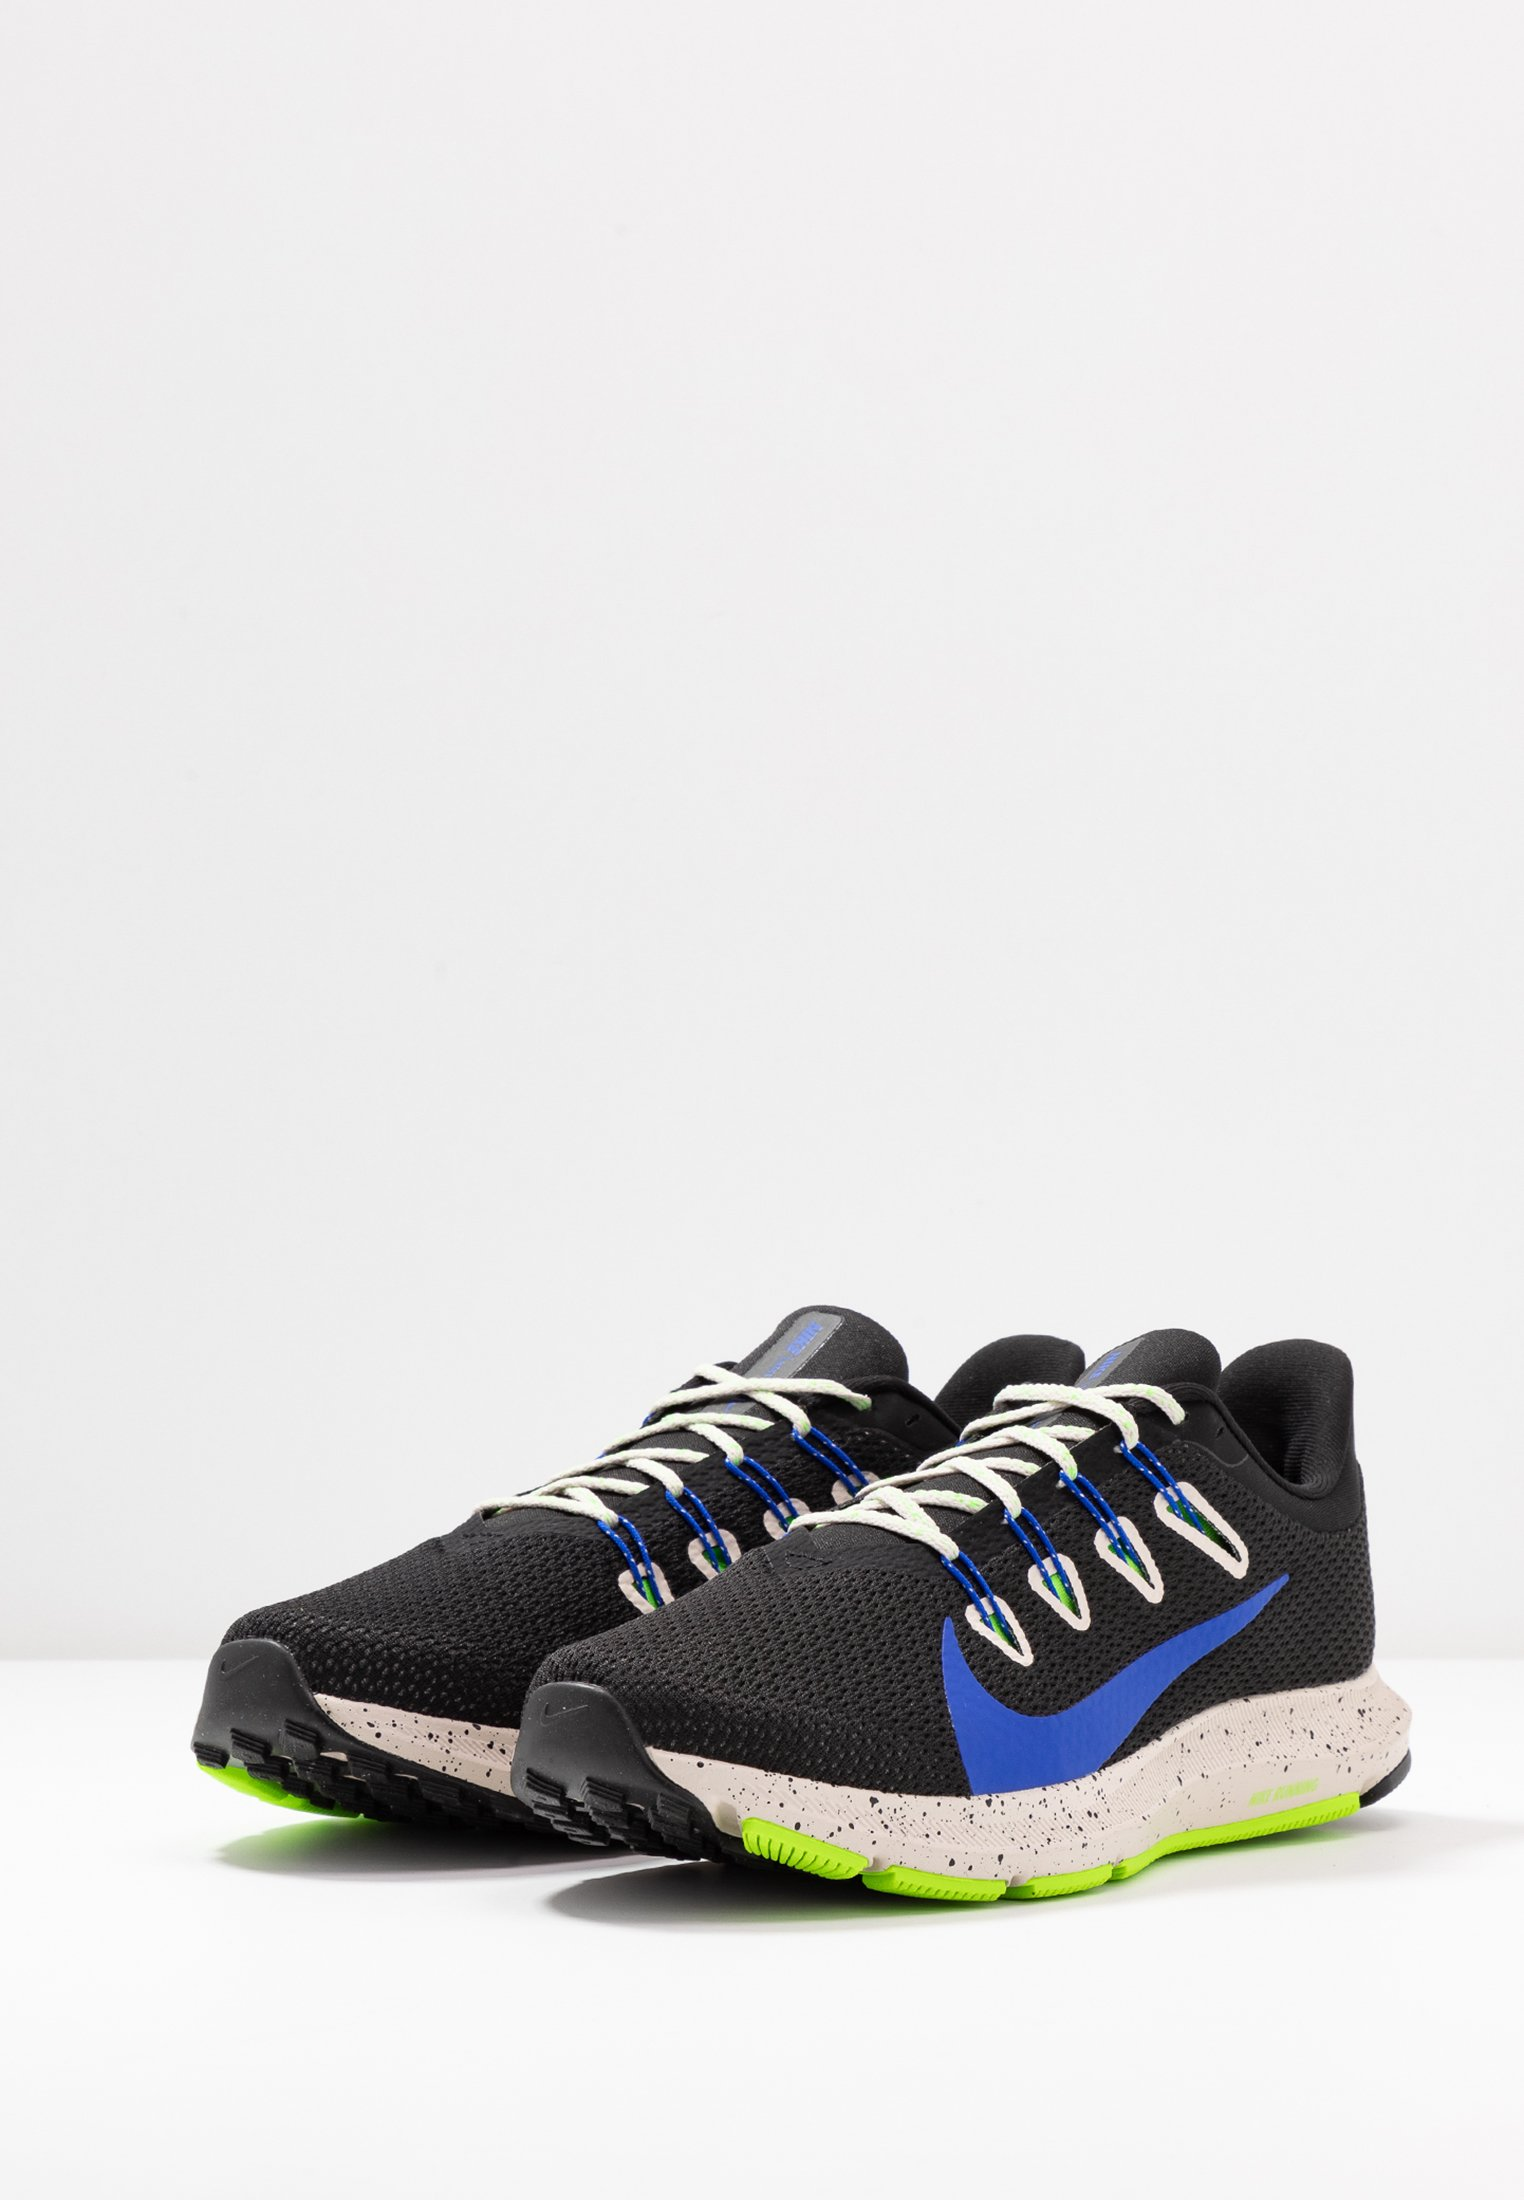 QUEST black SEChaussures neutres Performance sand running blue racer Nike desert 2 de 3jL4Aq5R